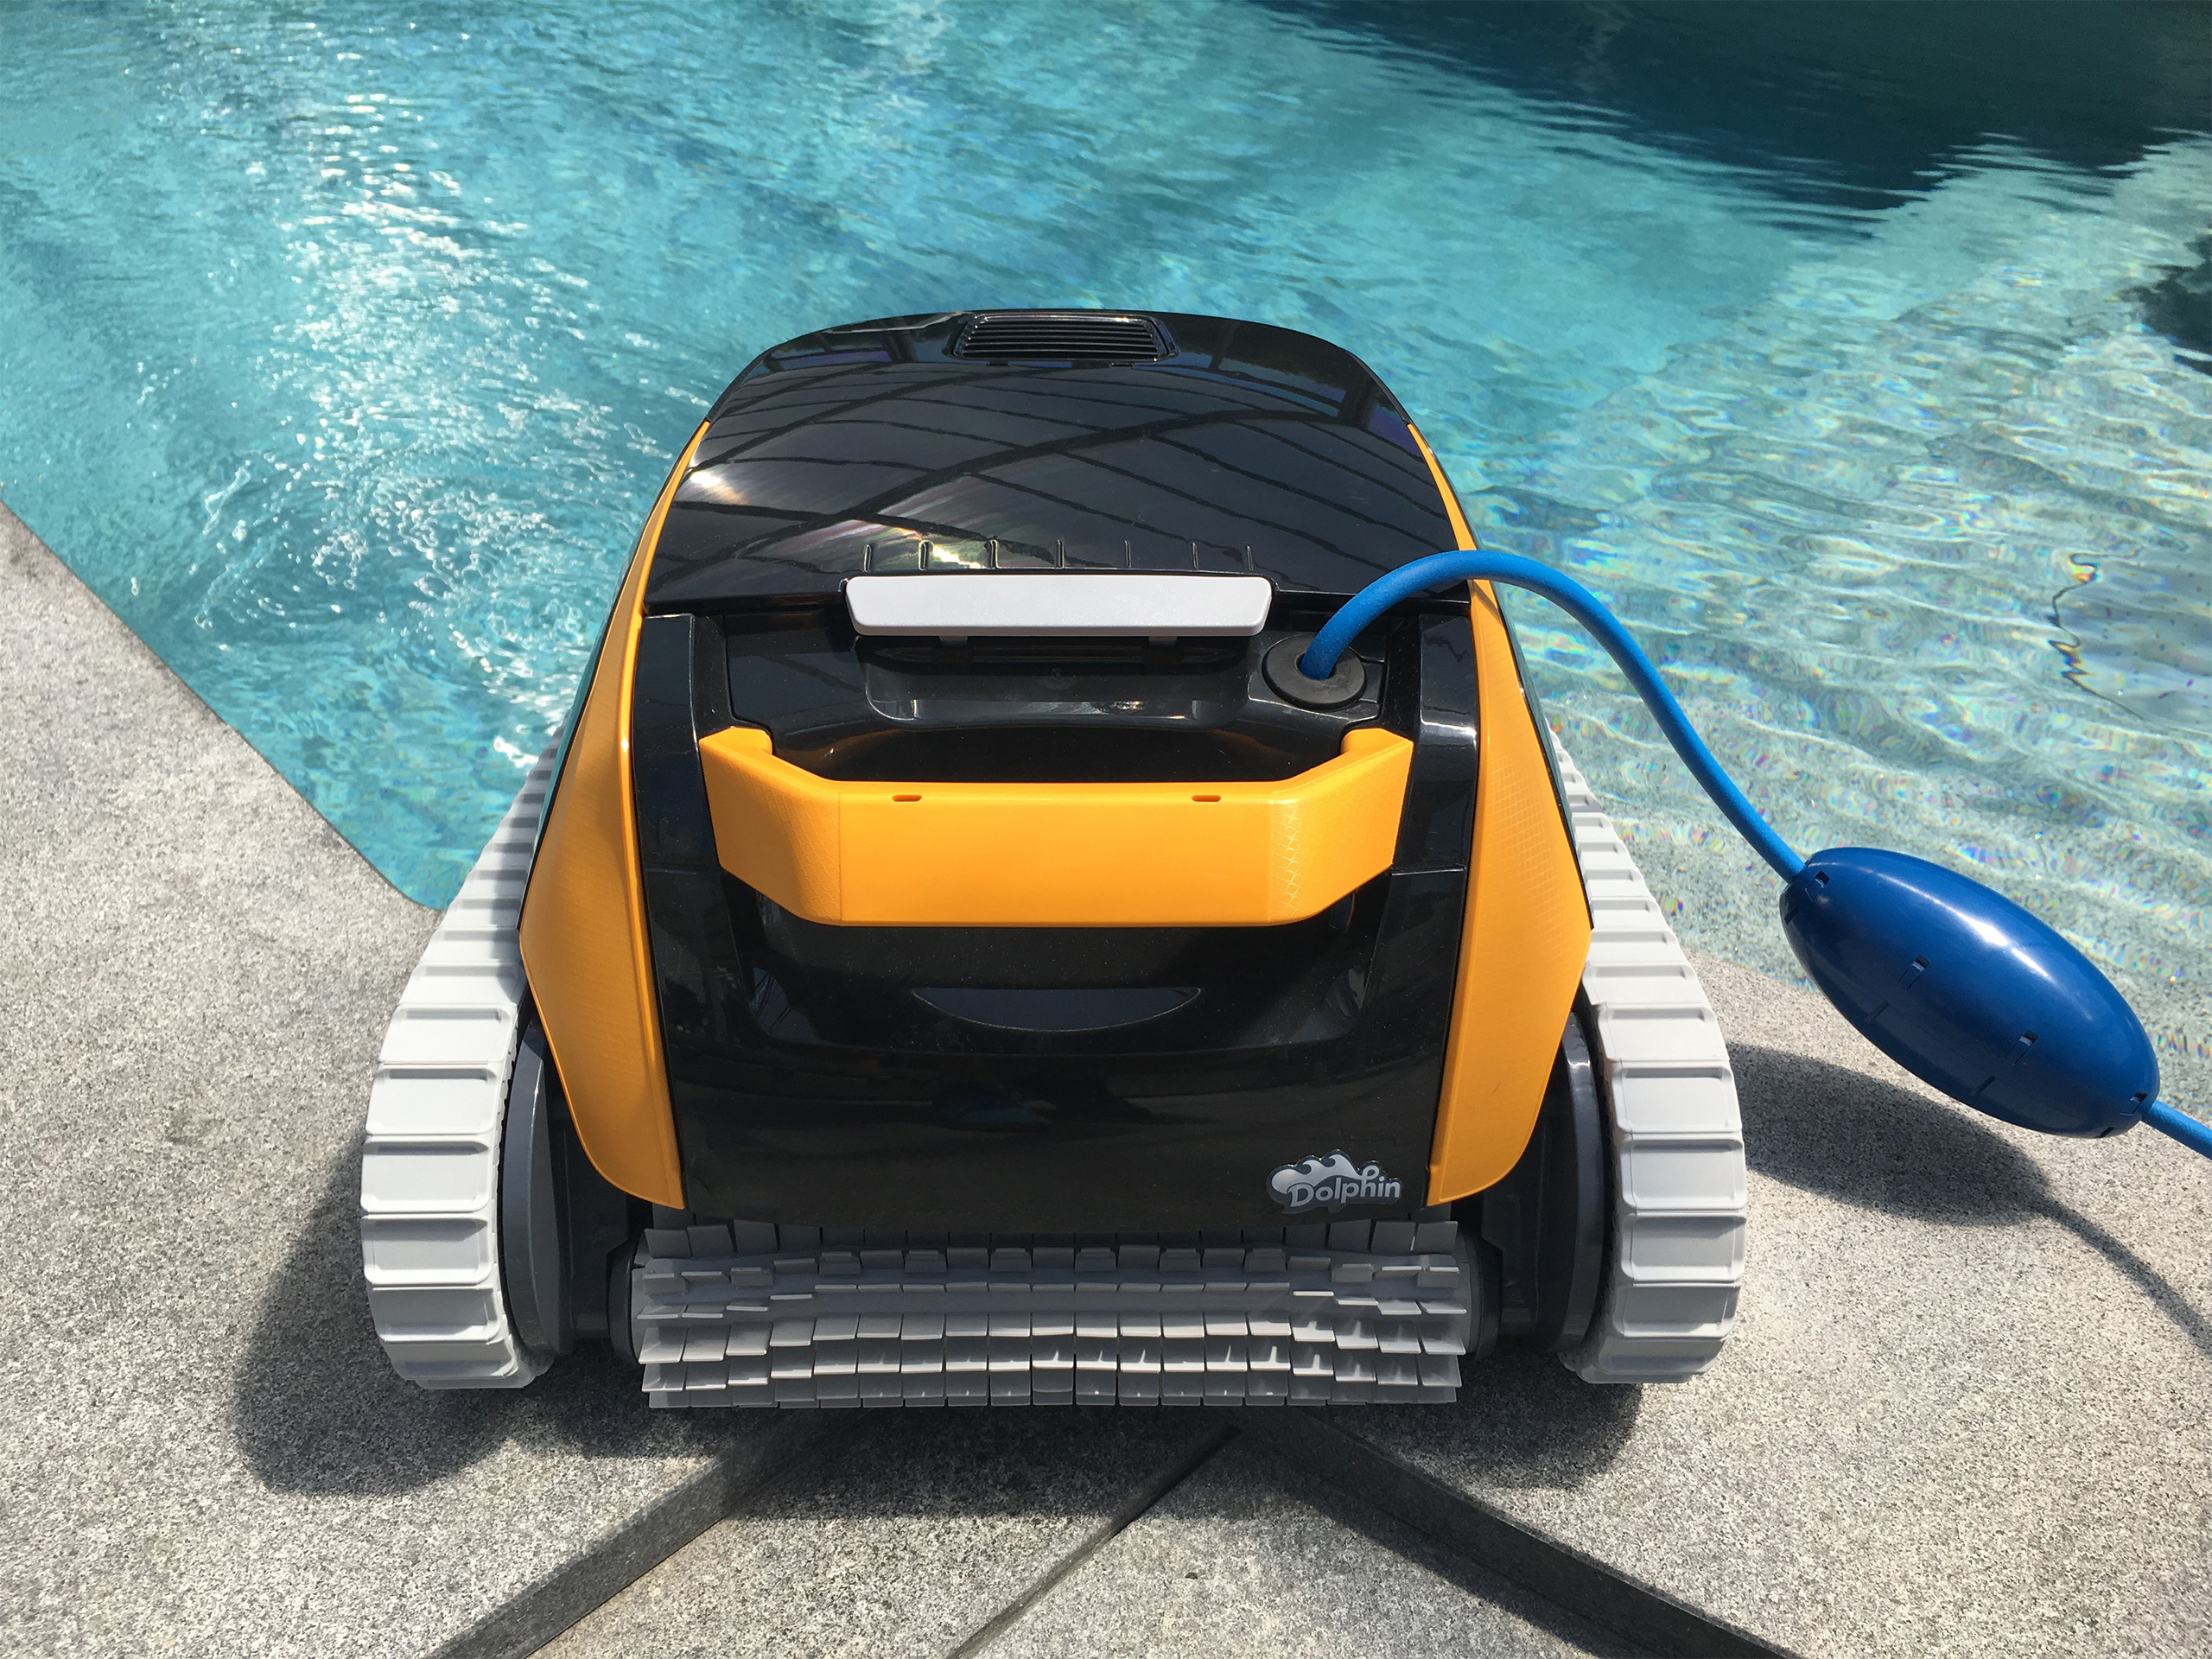 Bodensauger Pool Roboter Poolroboter Poolsauger Dolphin E20 Fkb Schwimmbadtechnik